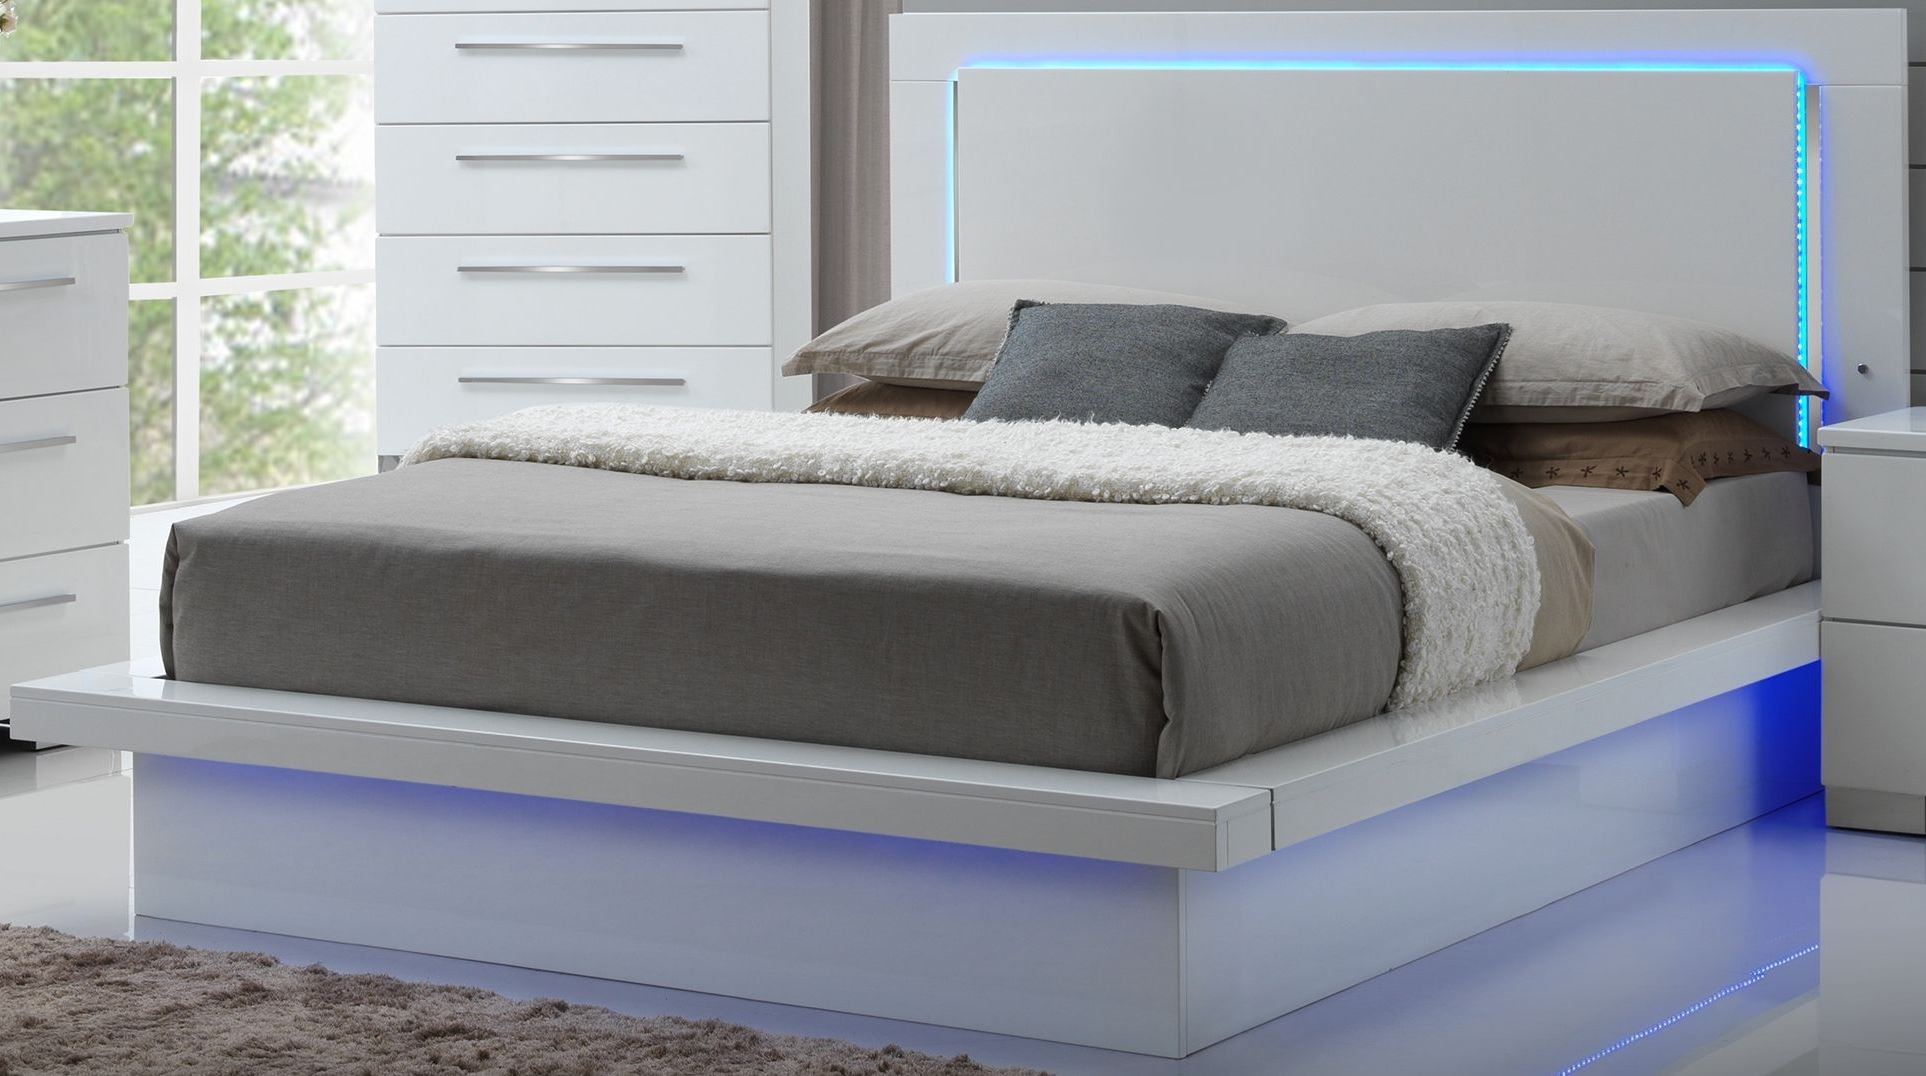 Sapphire High Gloss White Laminate King Platform Bed From